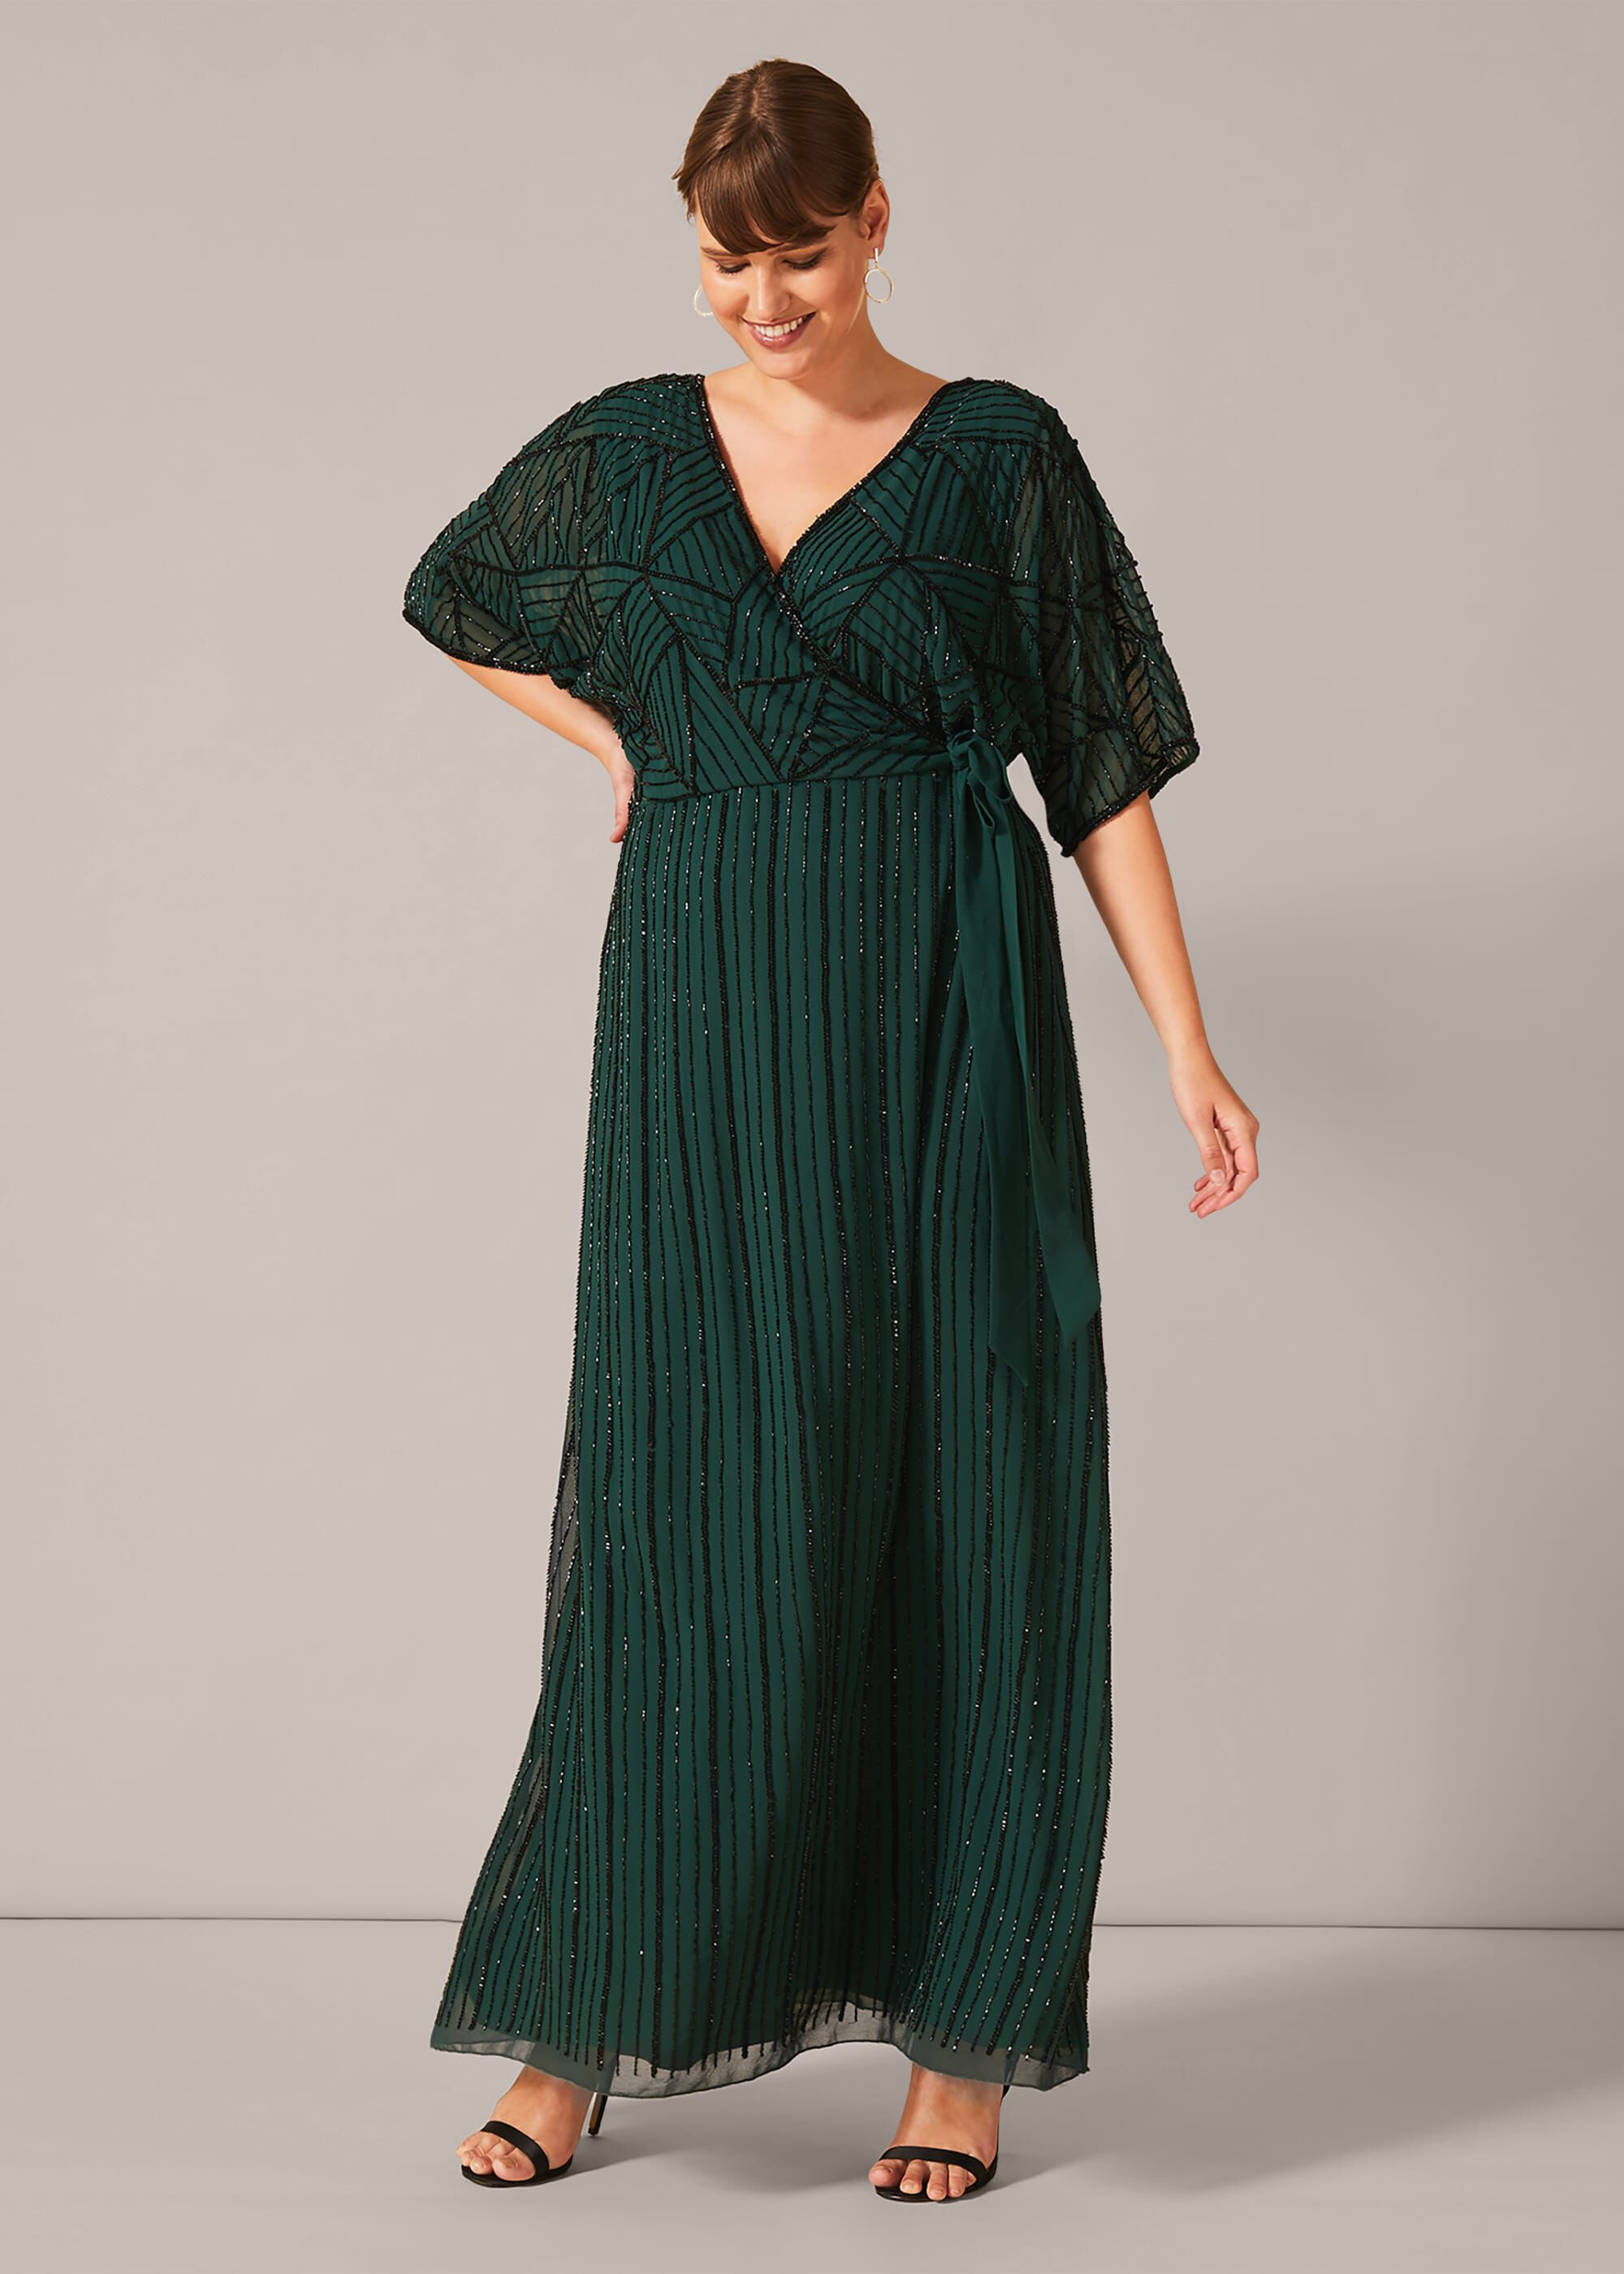 Studio 8 Electra Beaded Maxi Dress, Green, Maxi, Occasion Dress